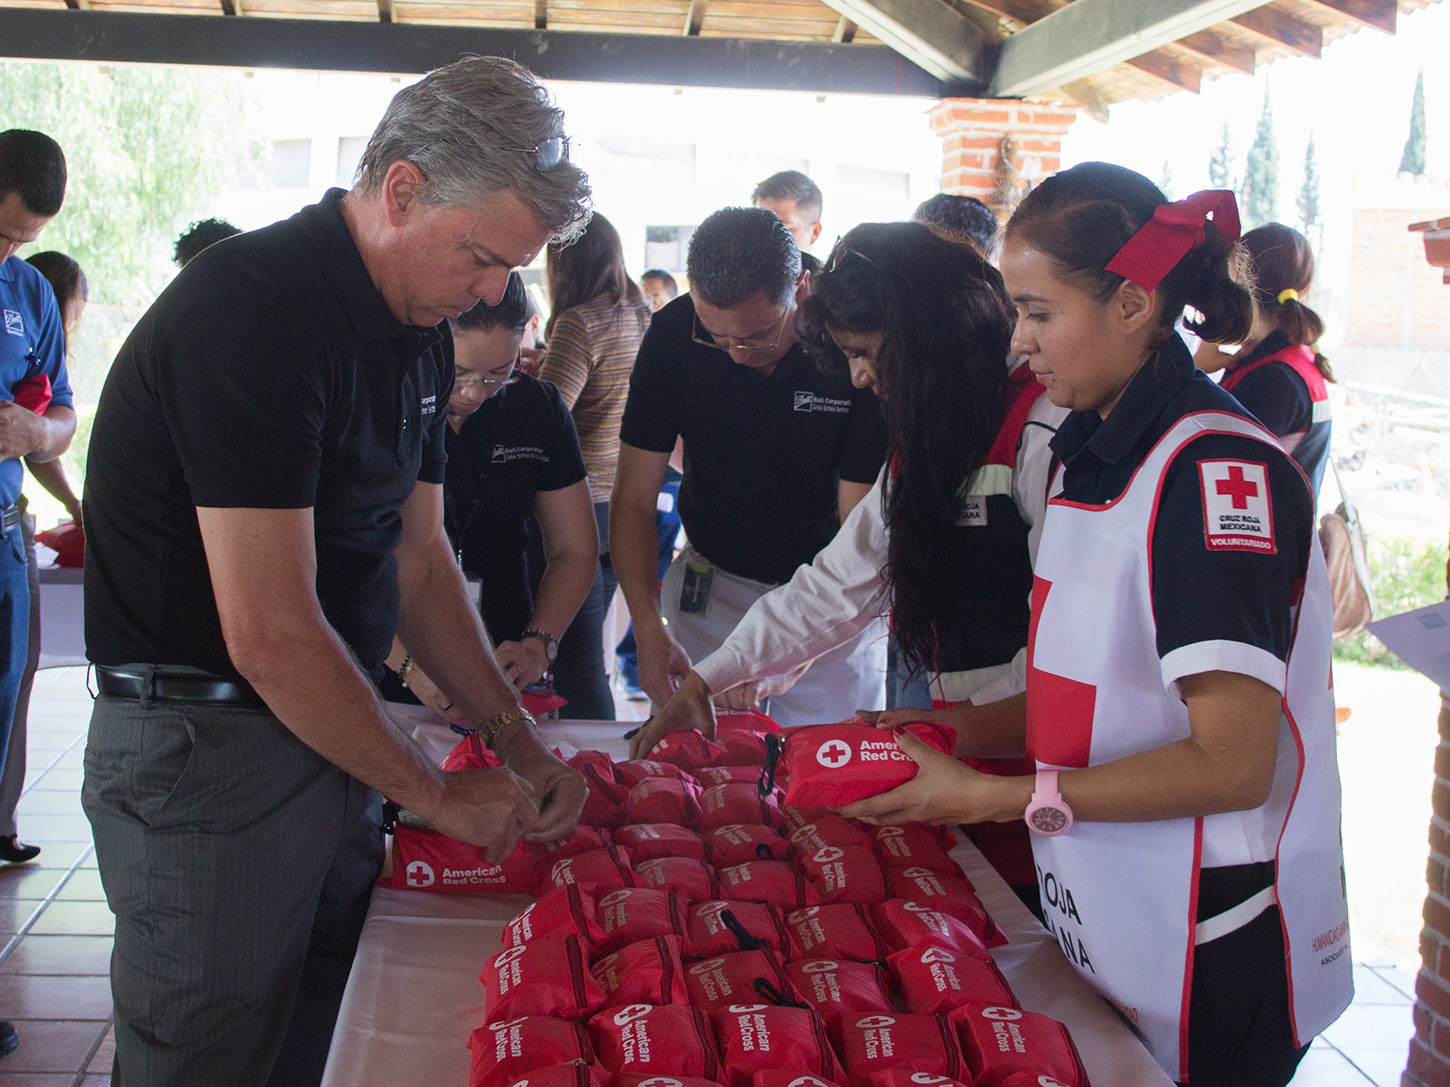 Ball employees and executives teamed up recently in Queretaro, Mexico, to build first aid kits for victims affected by major earthquakes that have shaken the country.